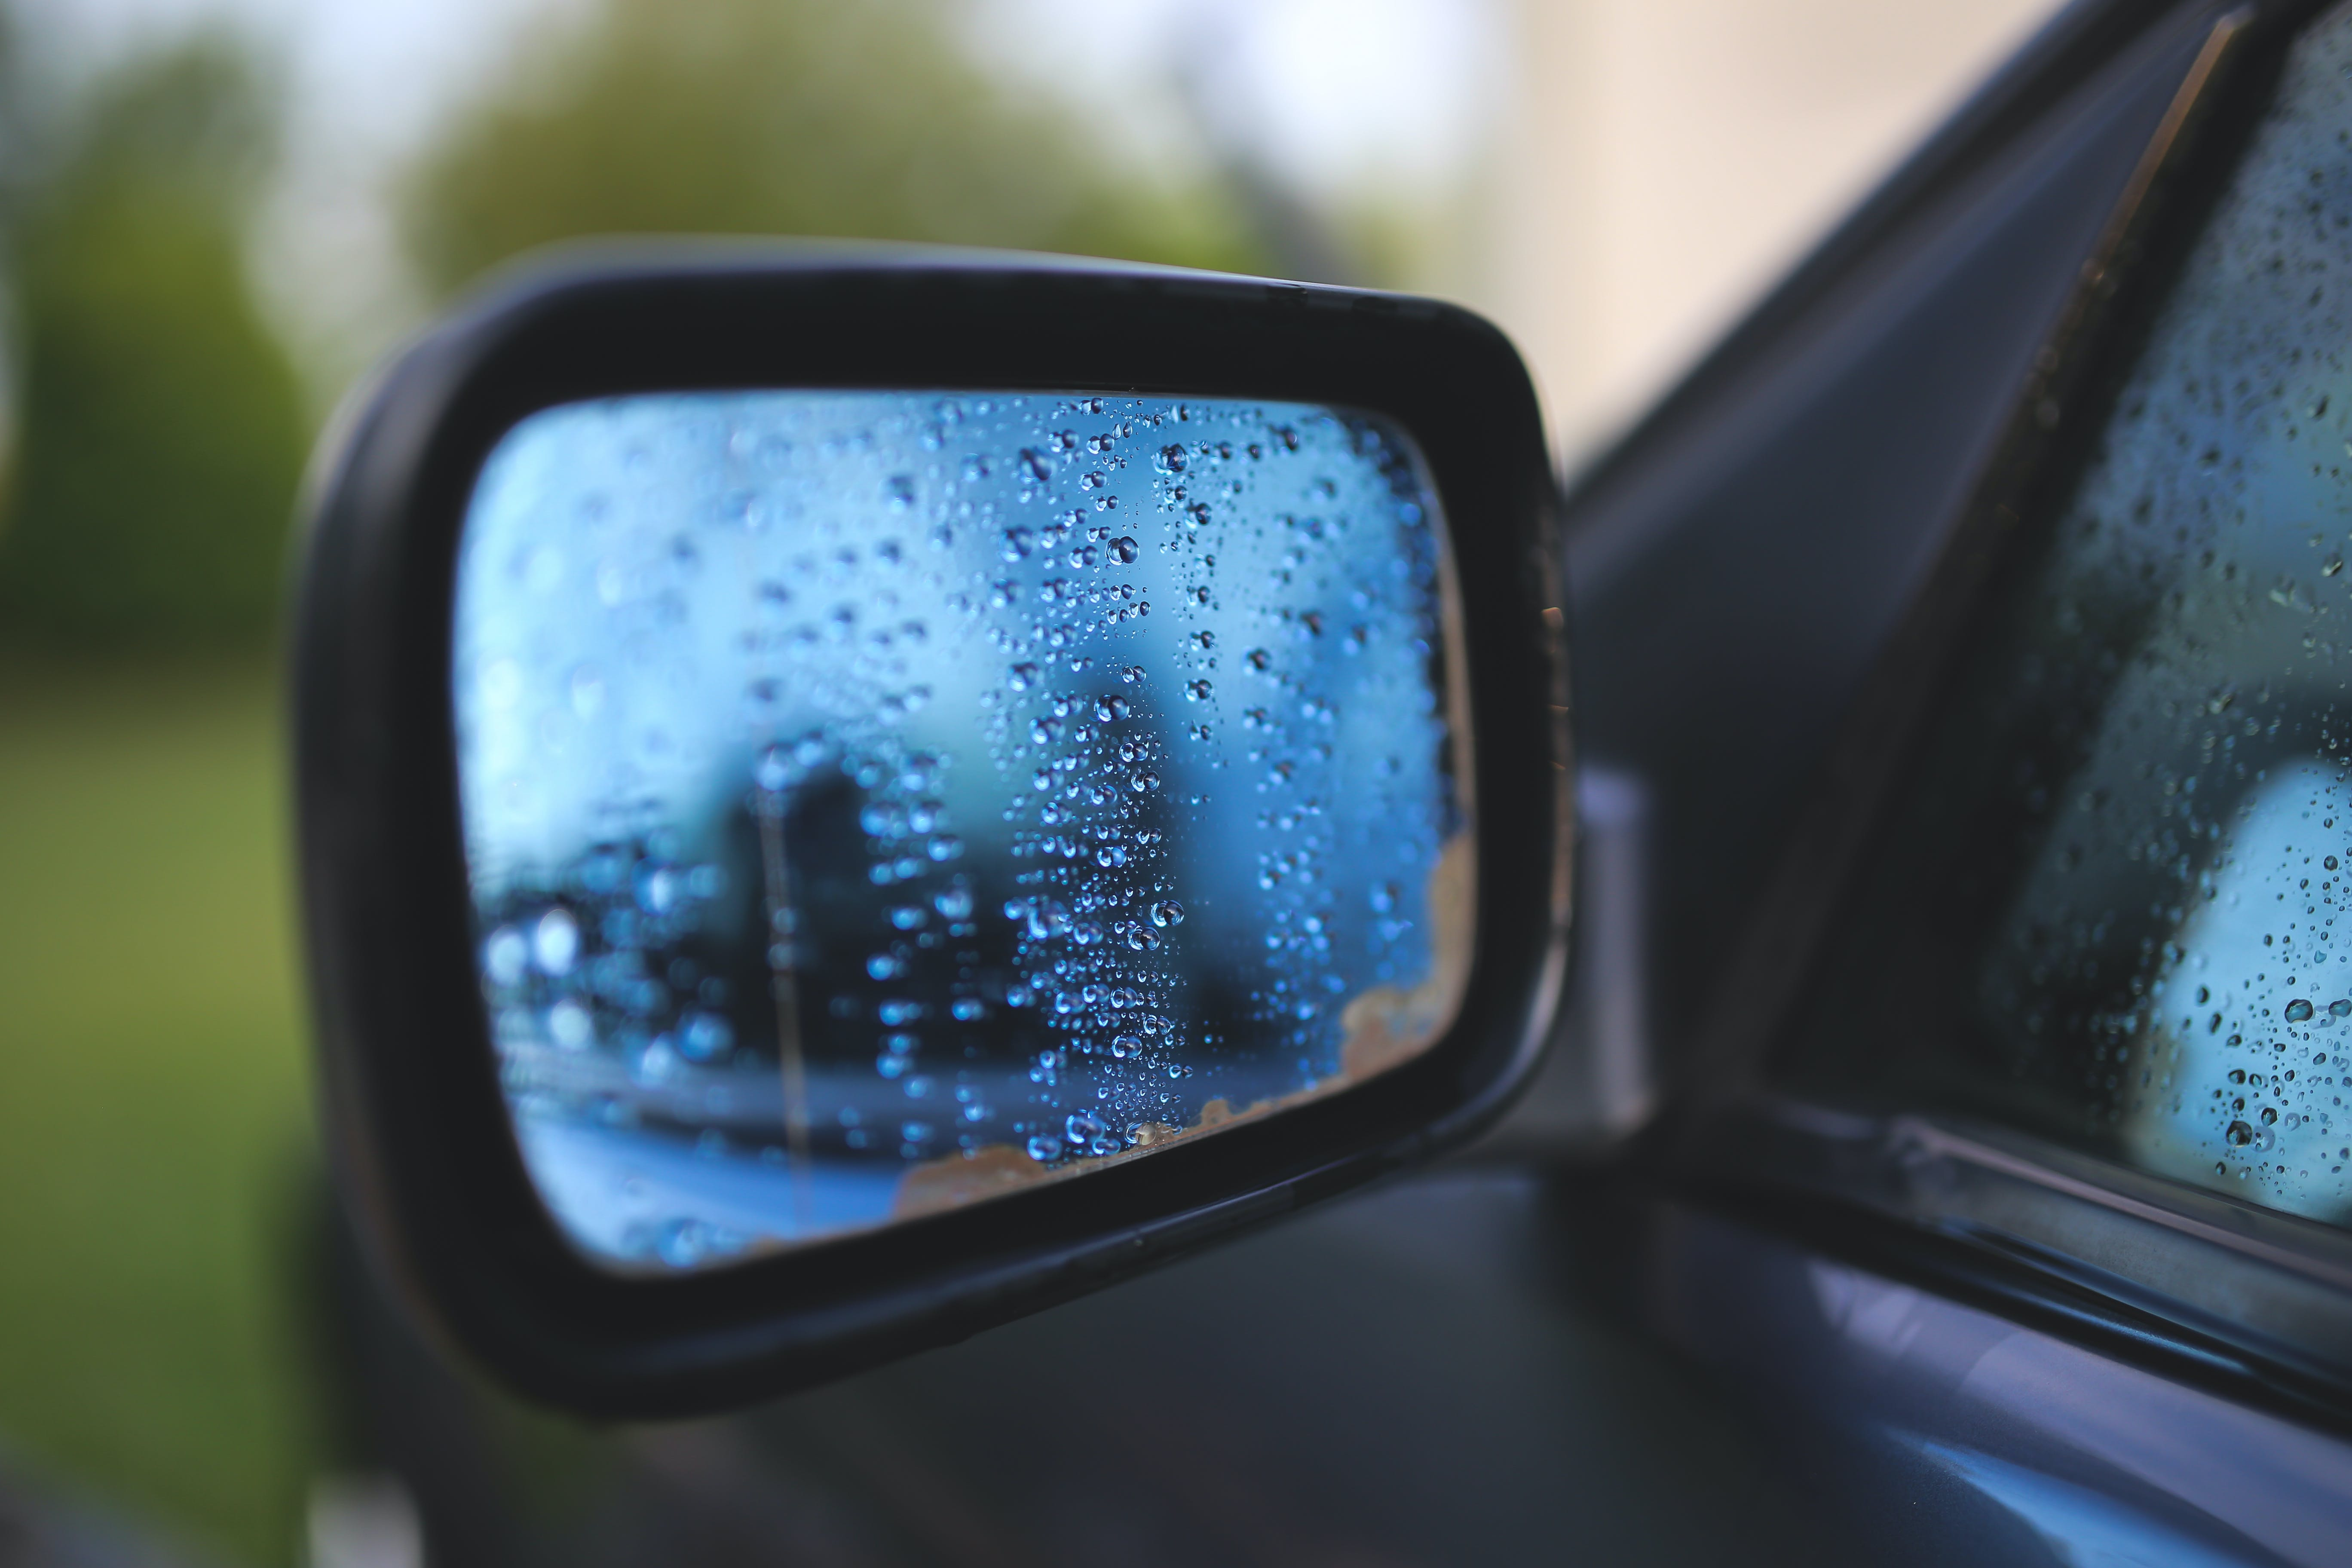 Drops on a car mirror